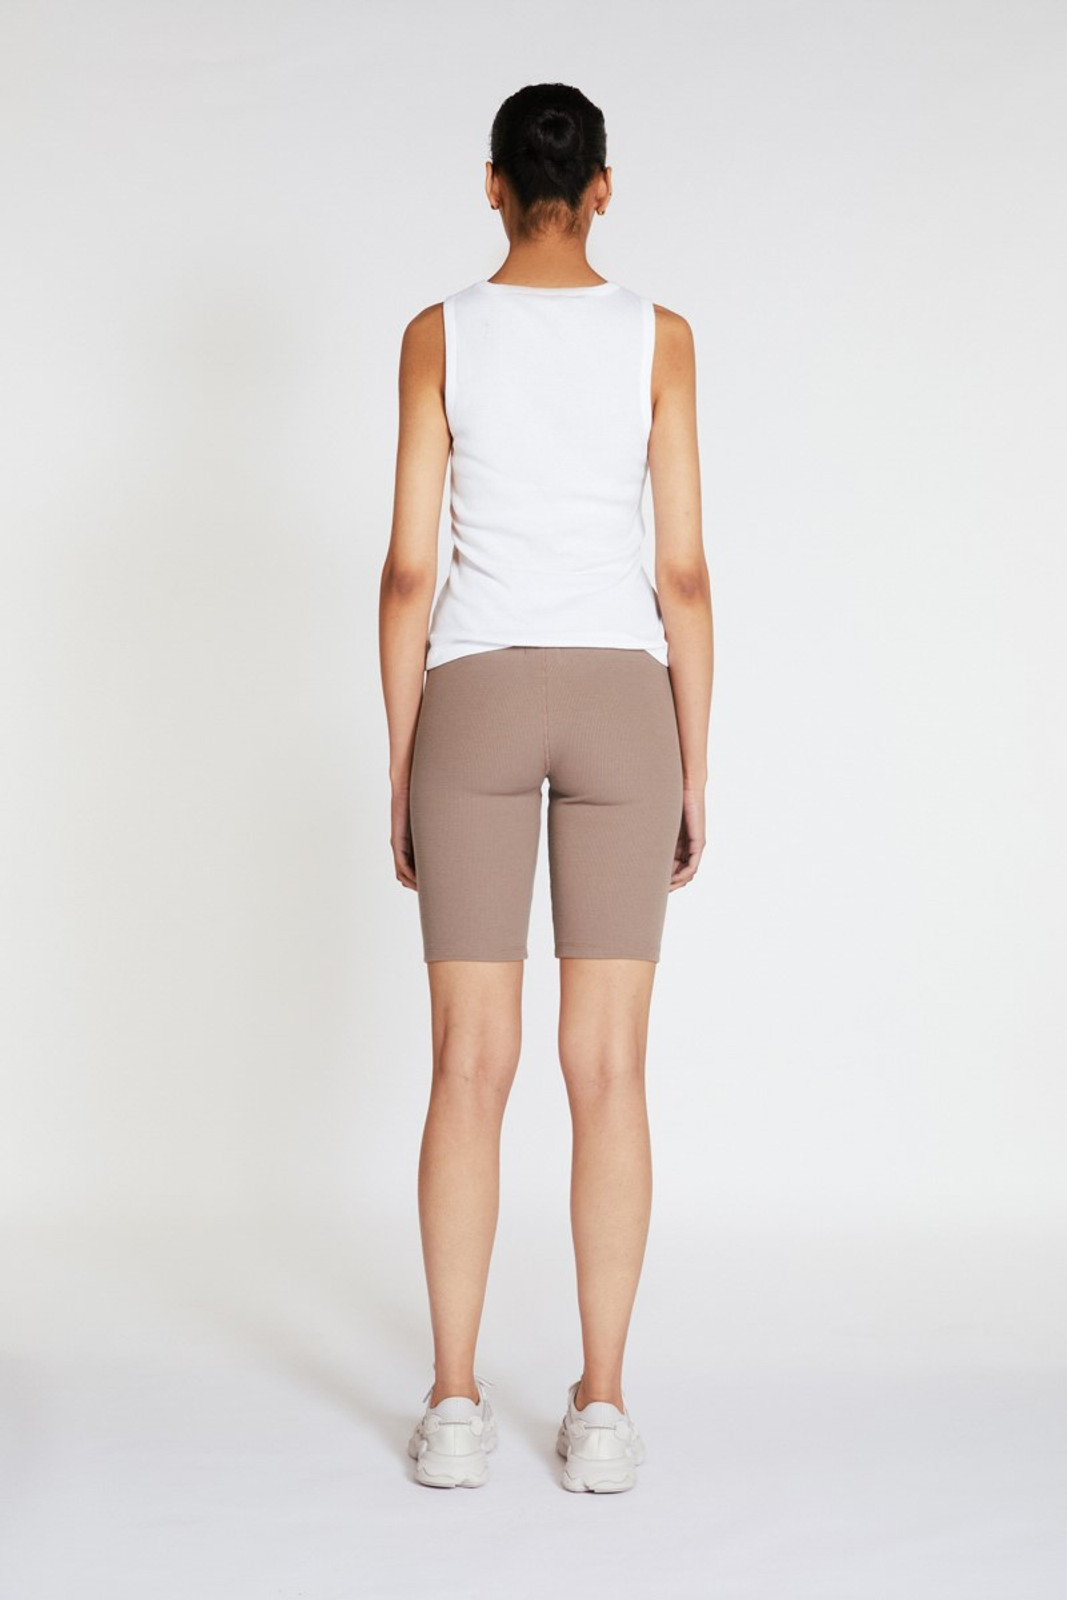 Elka Collective Racer Ribbed Short Neutrals  3